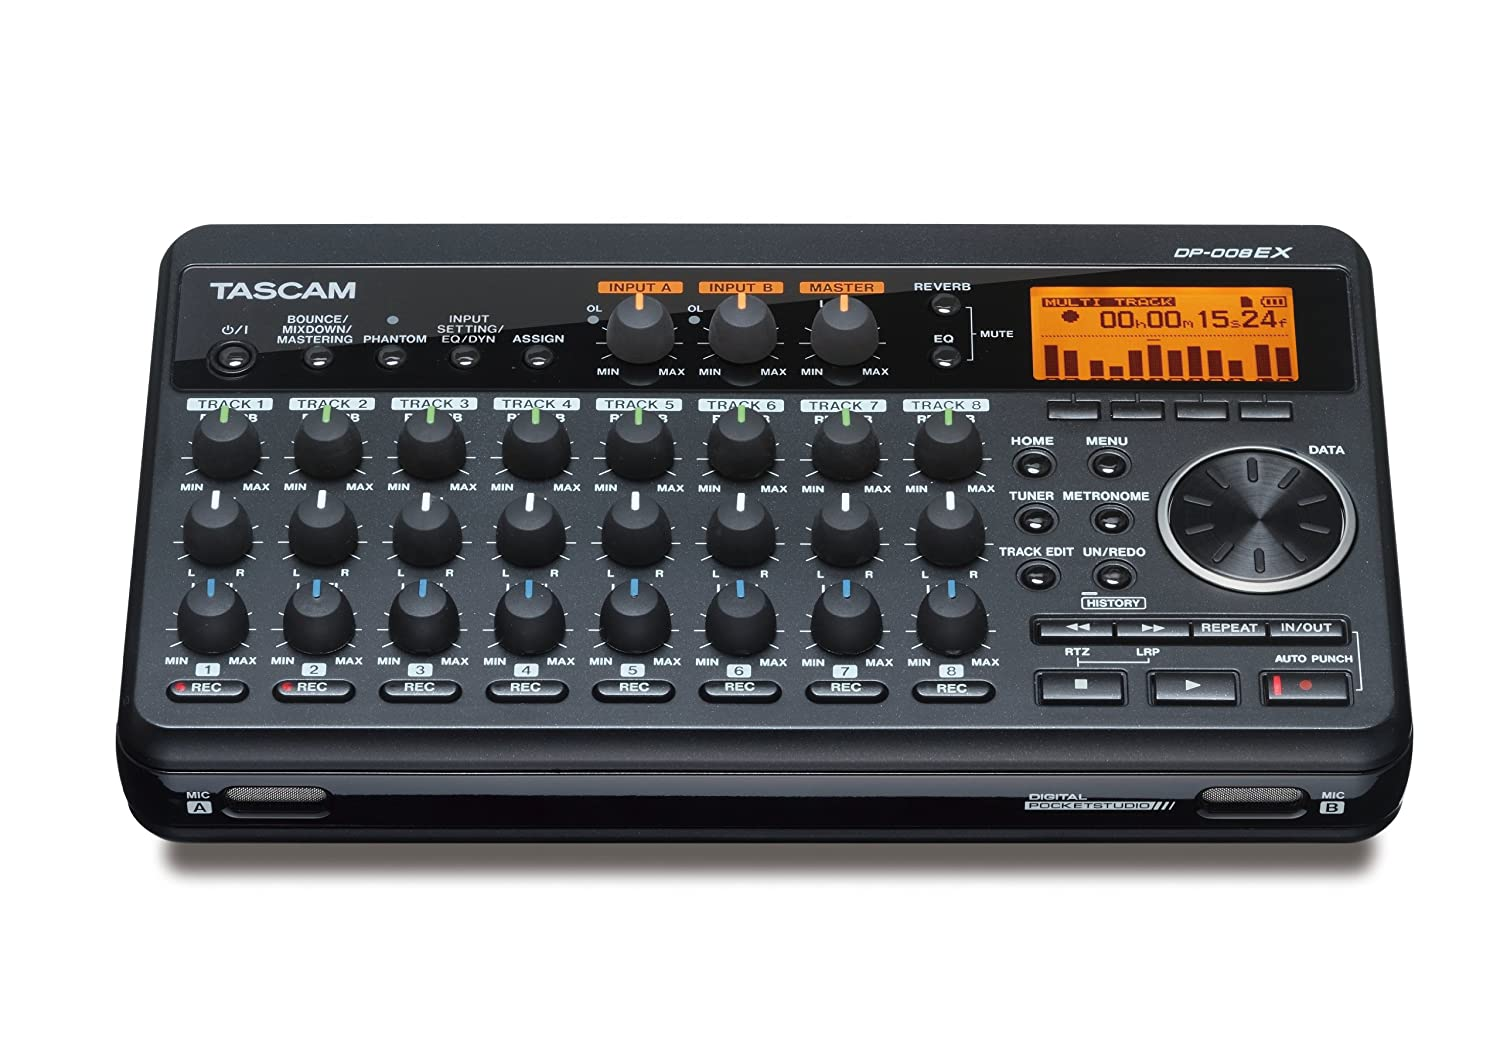 Tascam DP-008EX 8-Track Digital Pocketstudio Multi-Track Audio Recorder